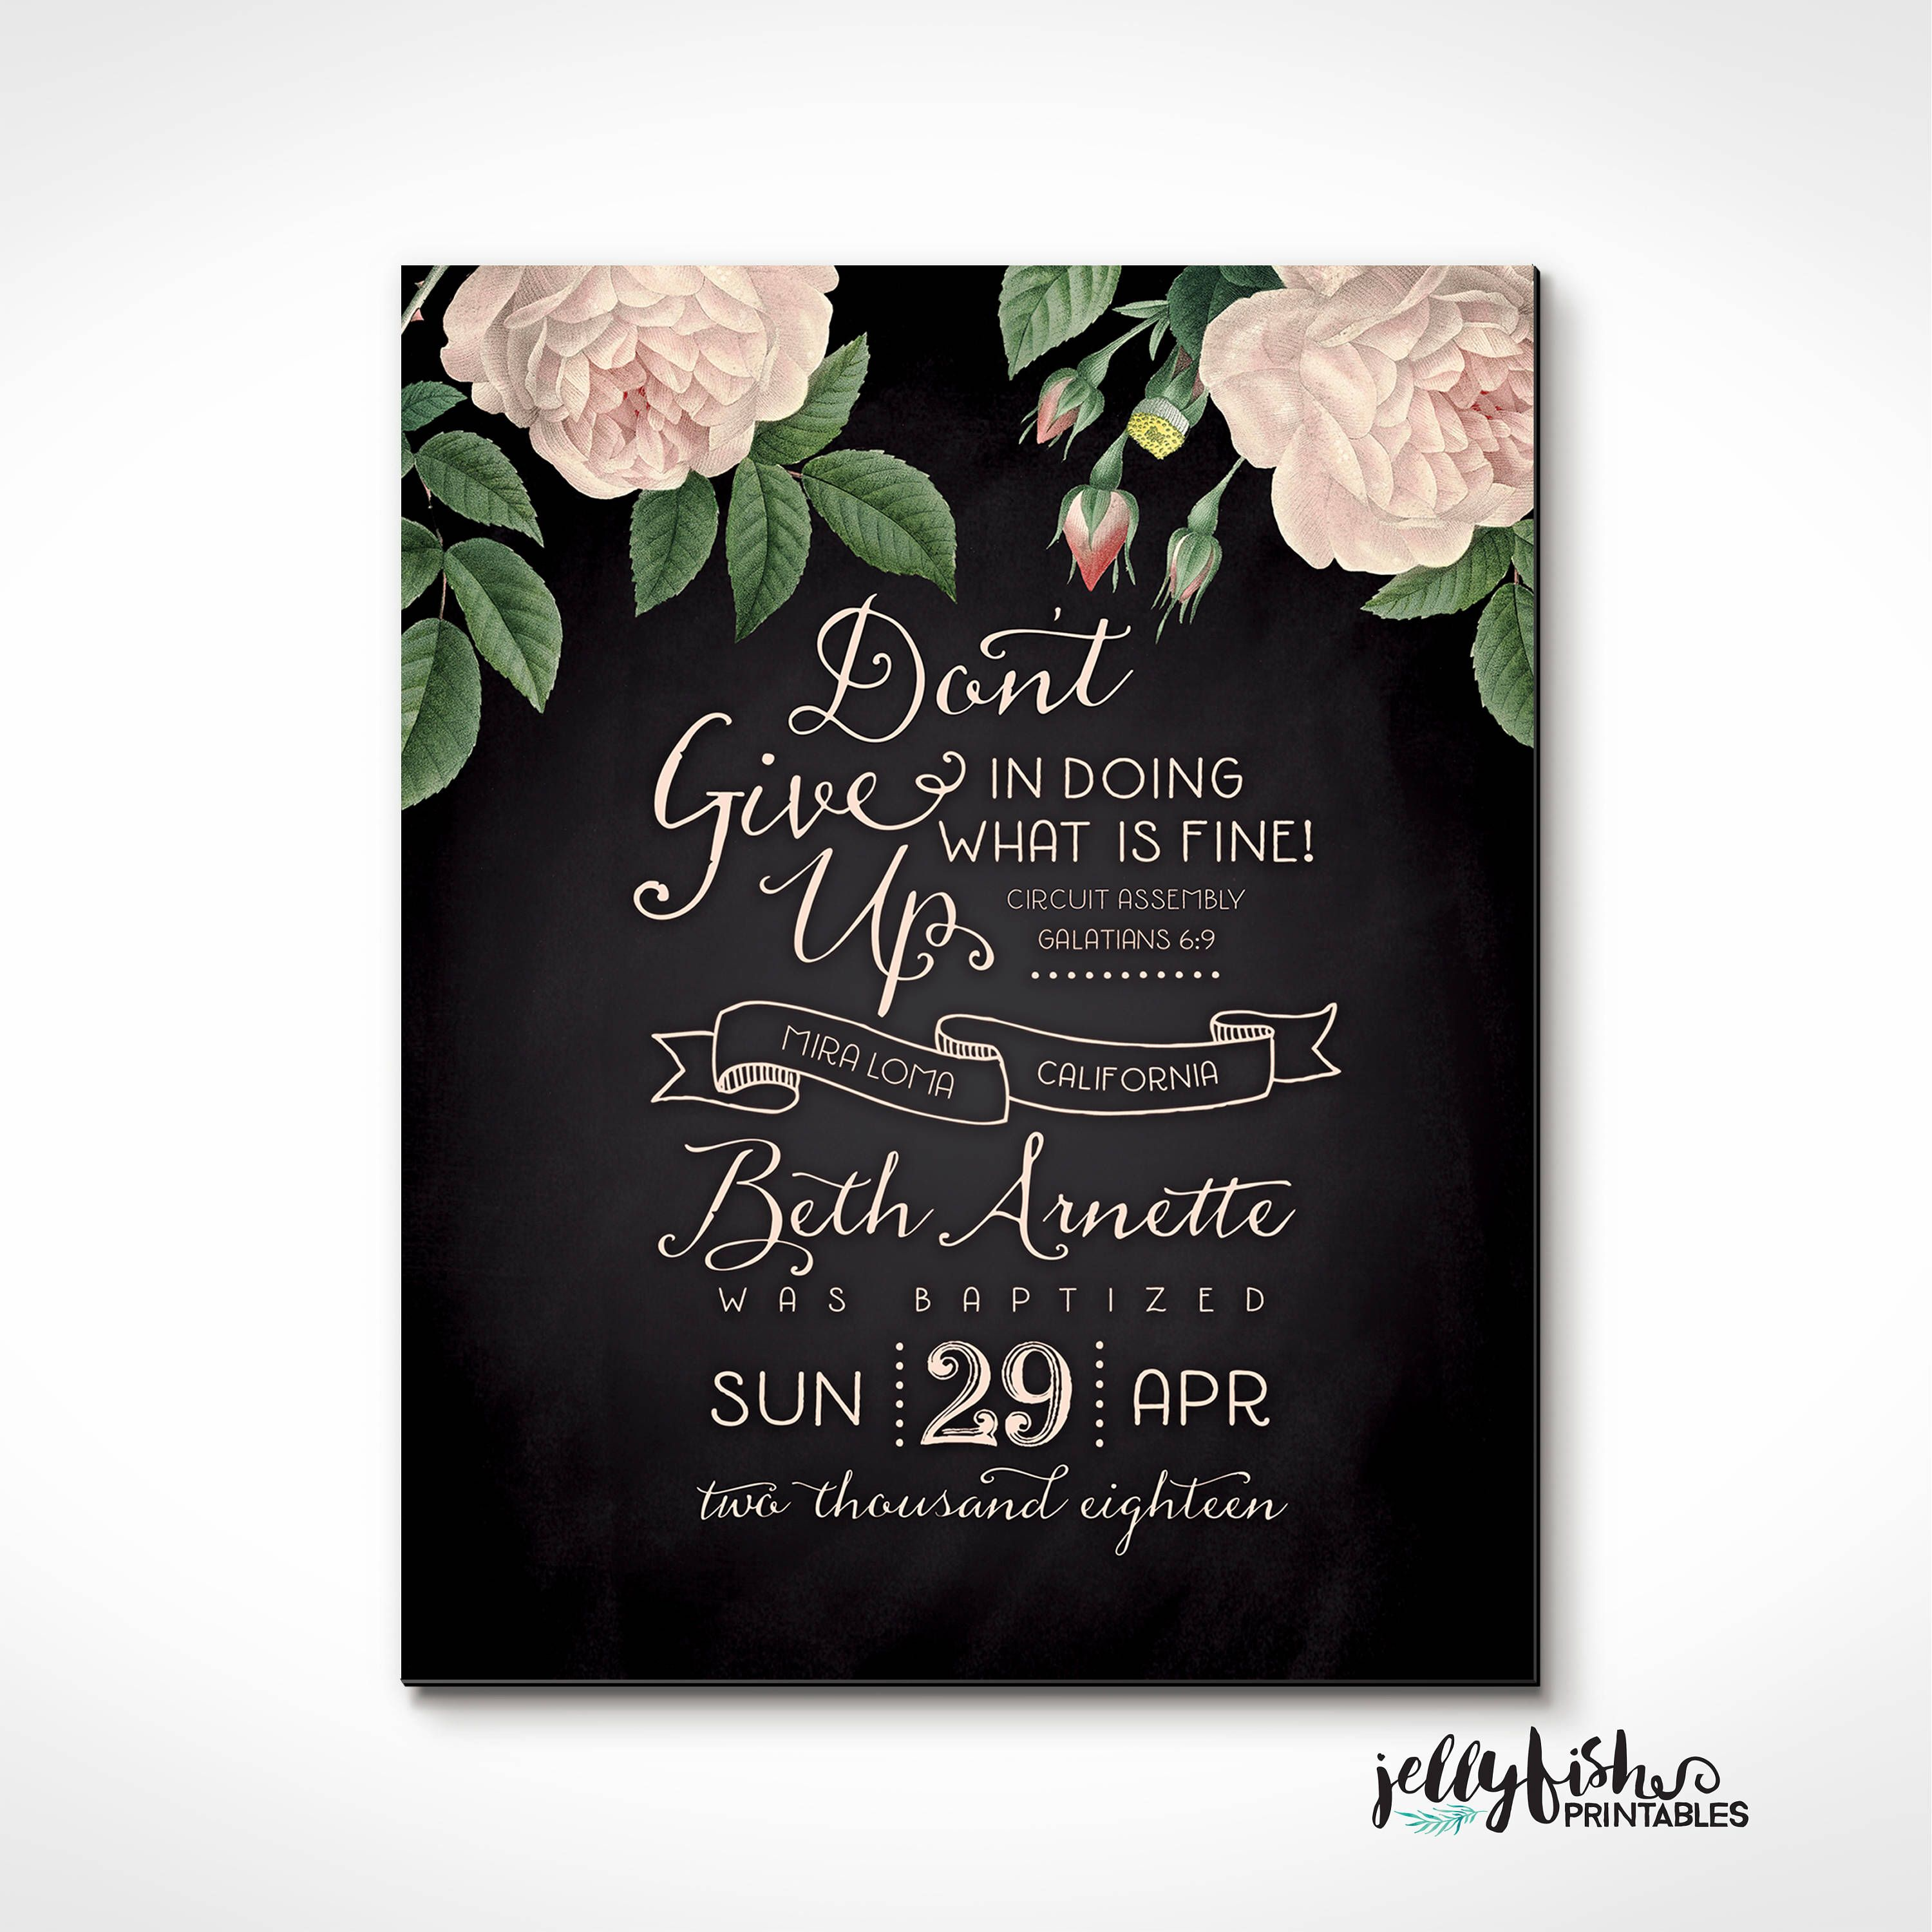 Jw Baptism Print Keepsake Current Assembly Theme Name Location Date Of Baptism Perfect T